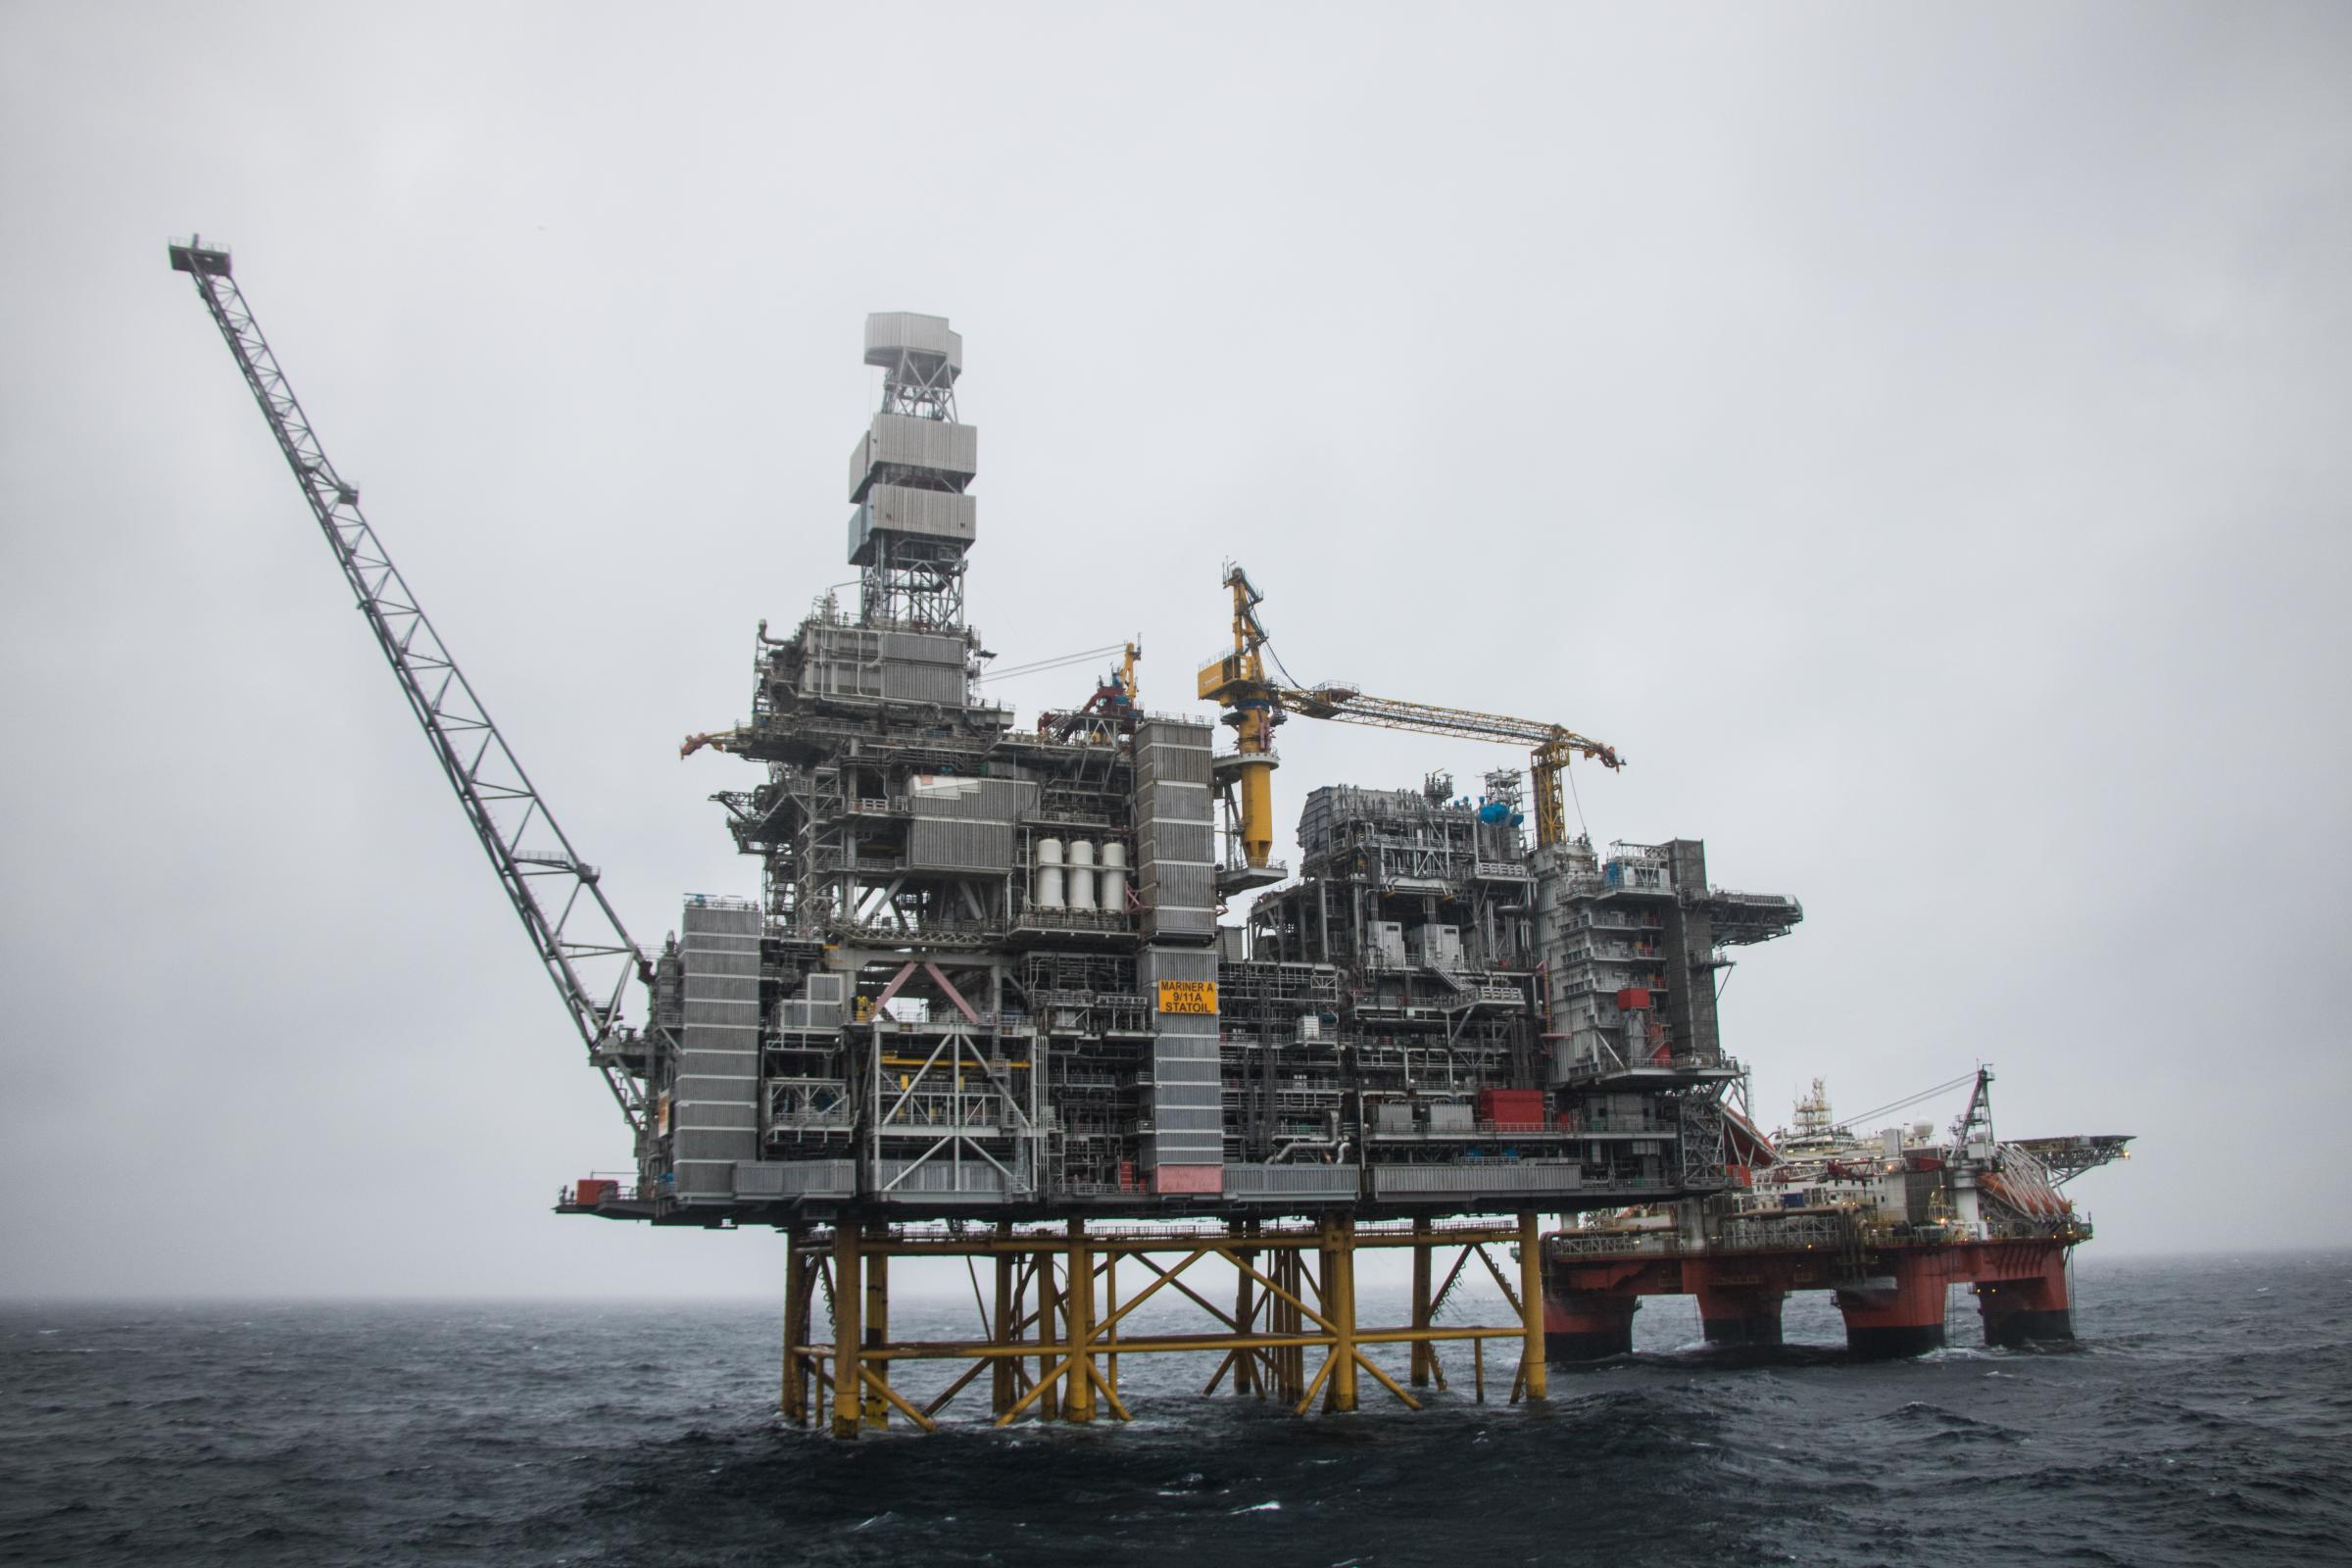 The Mariner production platform East of Shetland Picture: Jamie Baikie/Equinor